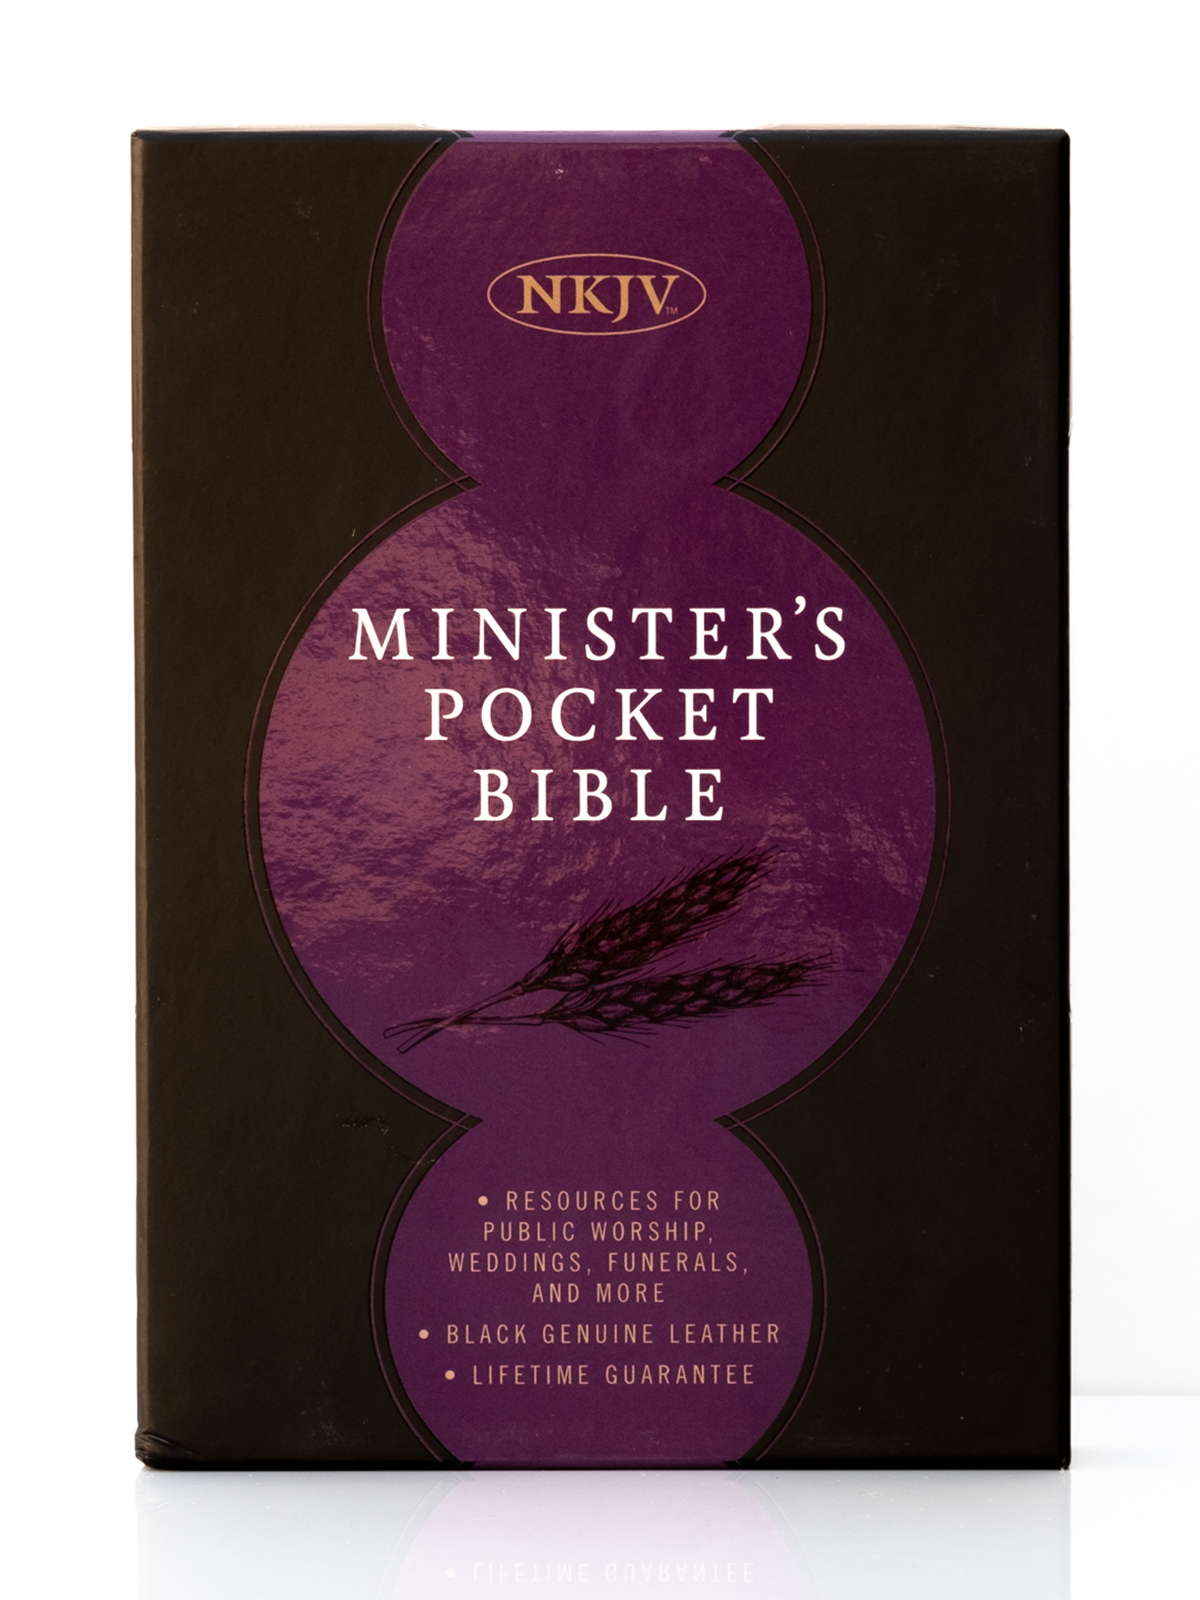 NKJV Ministers Pocket Bible Front Cover